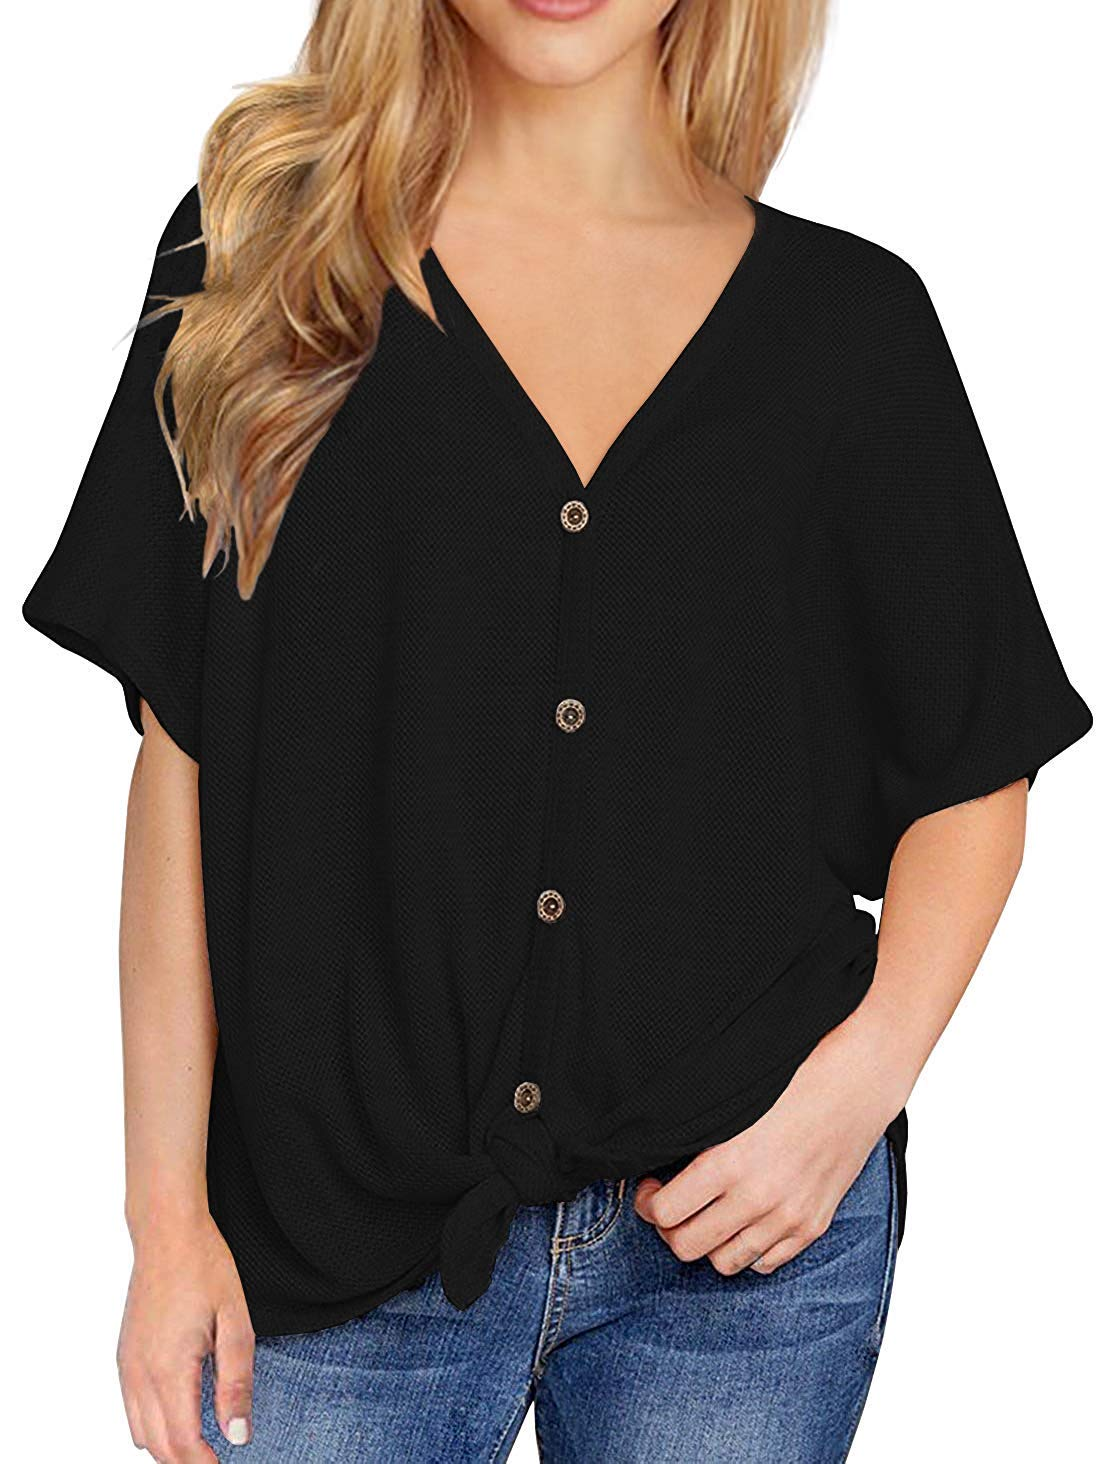 Chuhee Womens S-3XL Button Down Blouse Shirt Tie Knot Thermal Tops